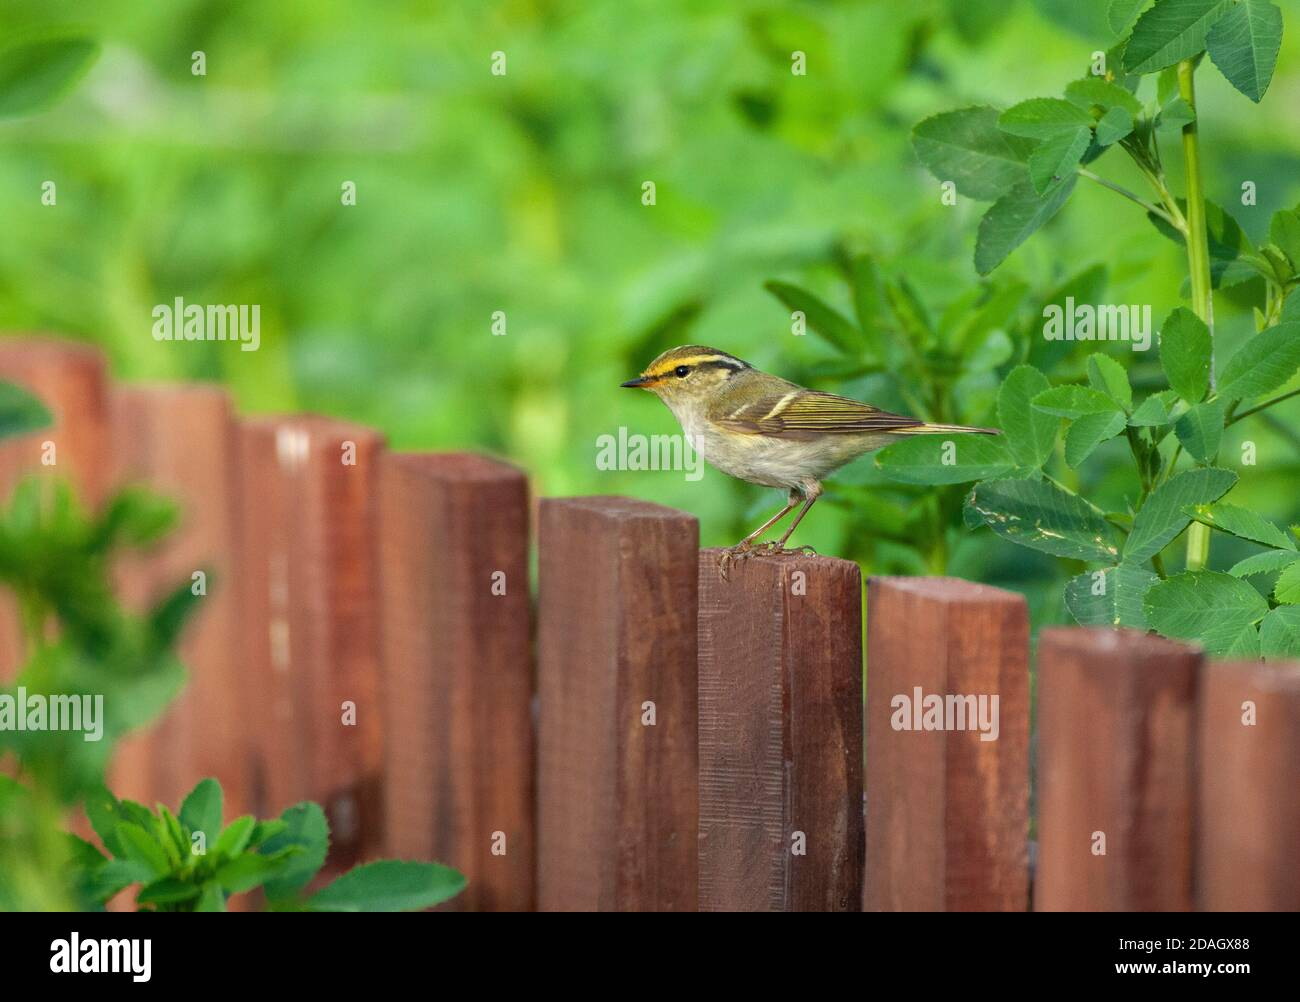 Pallas' leaf warbler (Phylloscopus proregulus), sitting on a wooden fence of a garden, China, Hebei Stock Photo